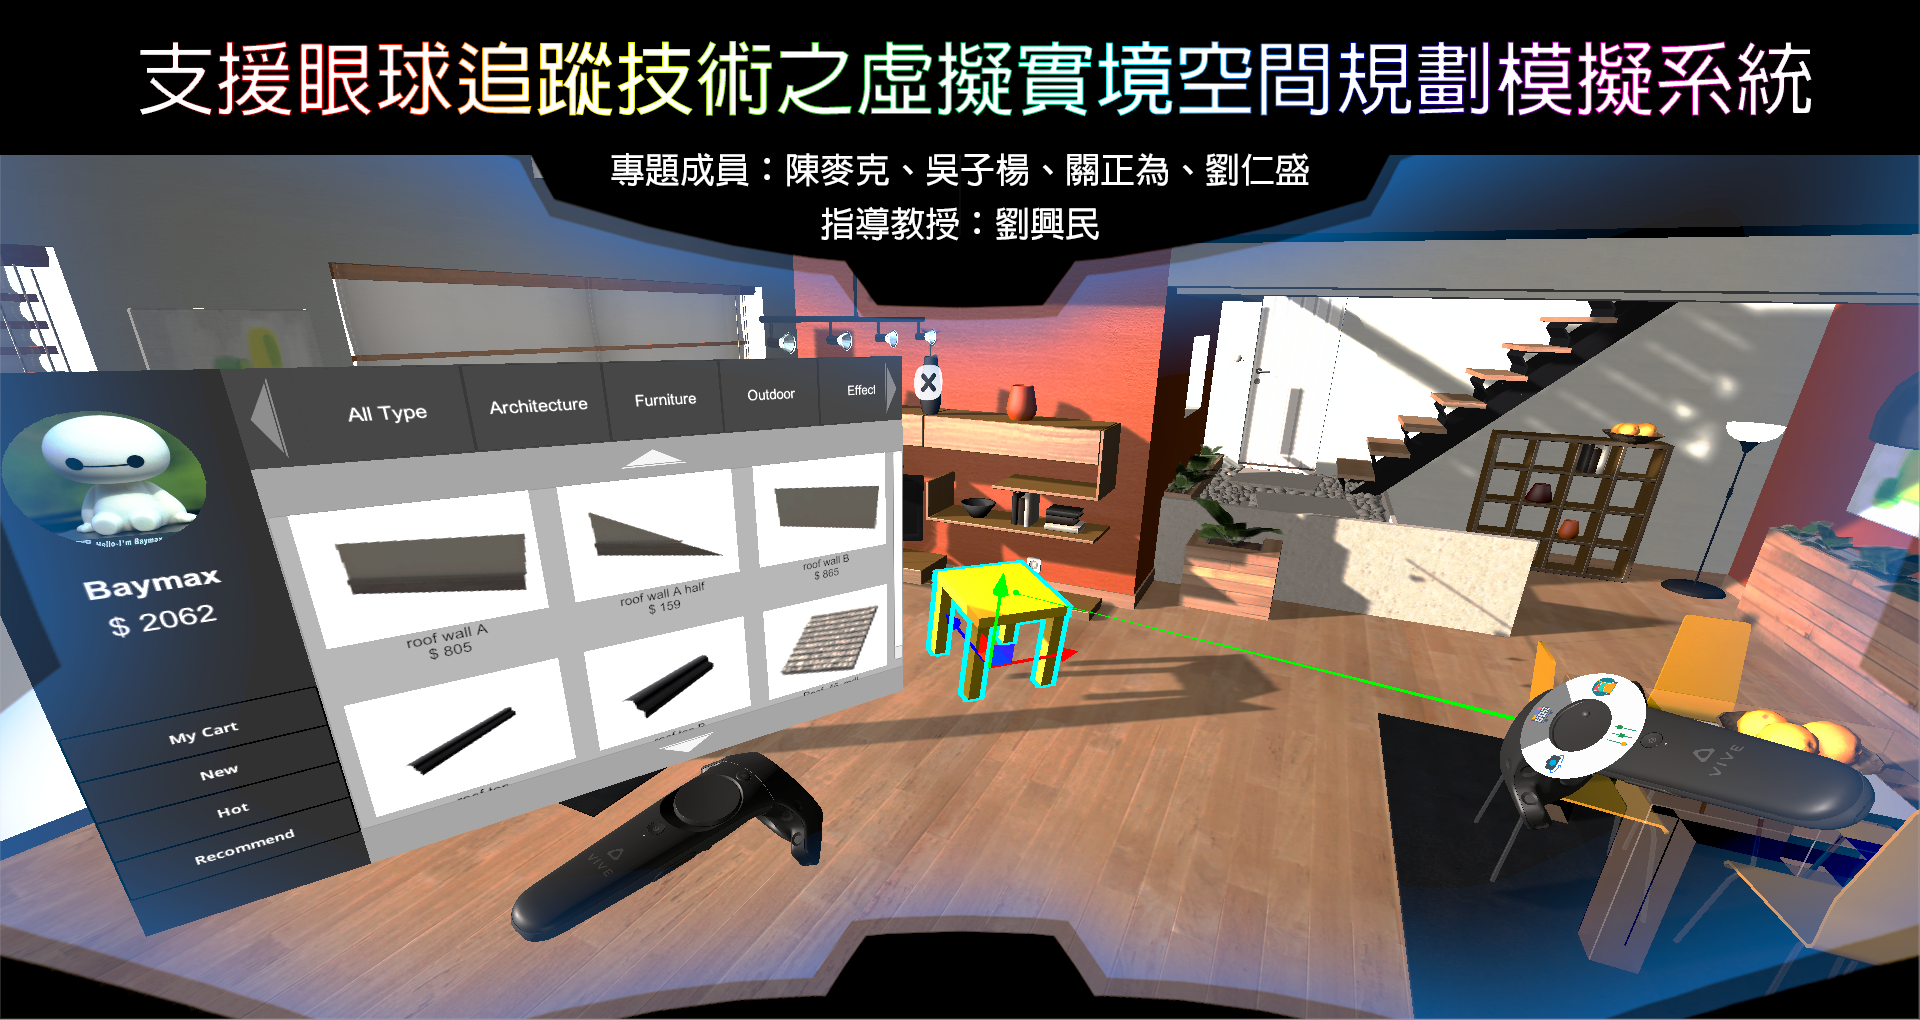 VR Shop Cover